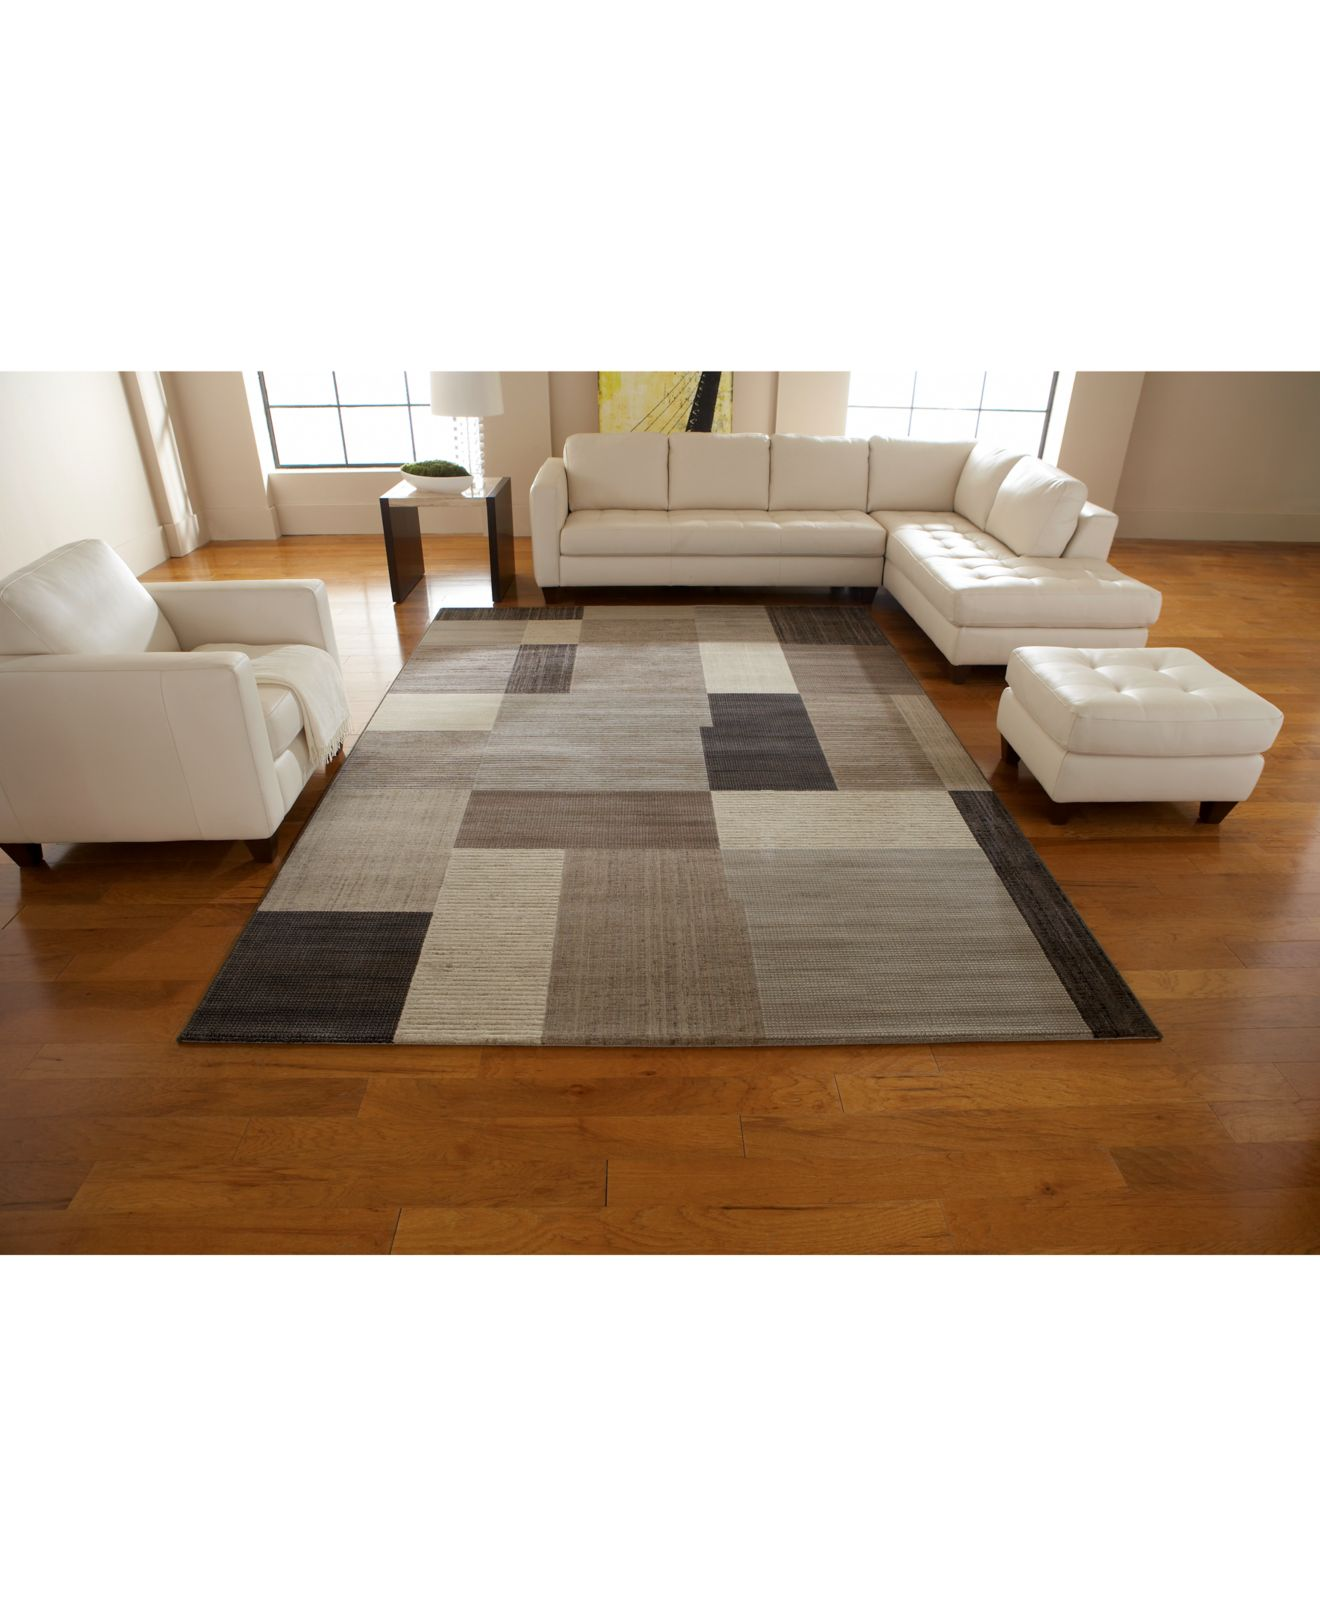 Contemporary Rugs Denver Co Rugs xcyyxh